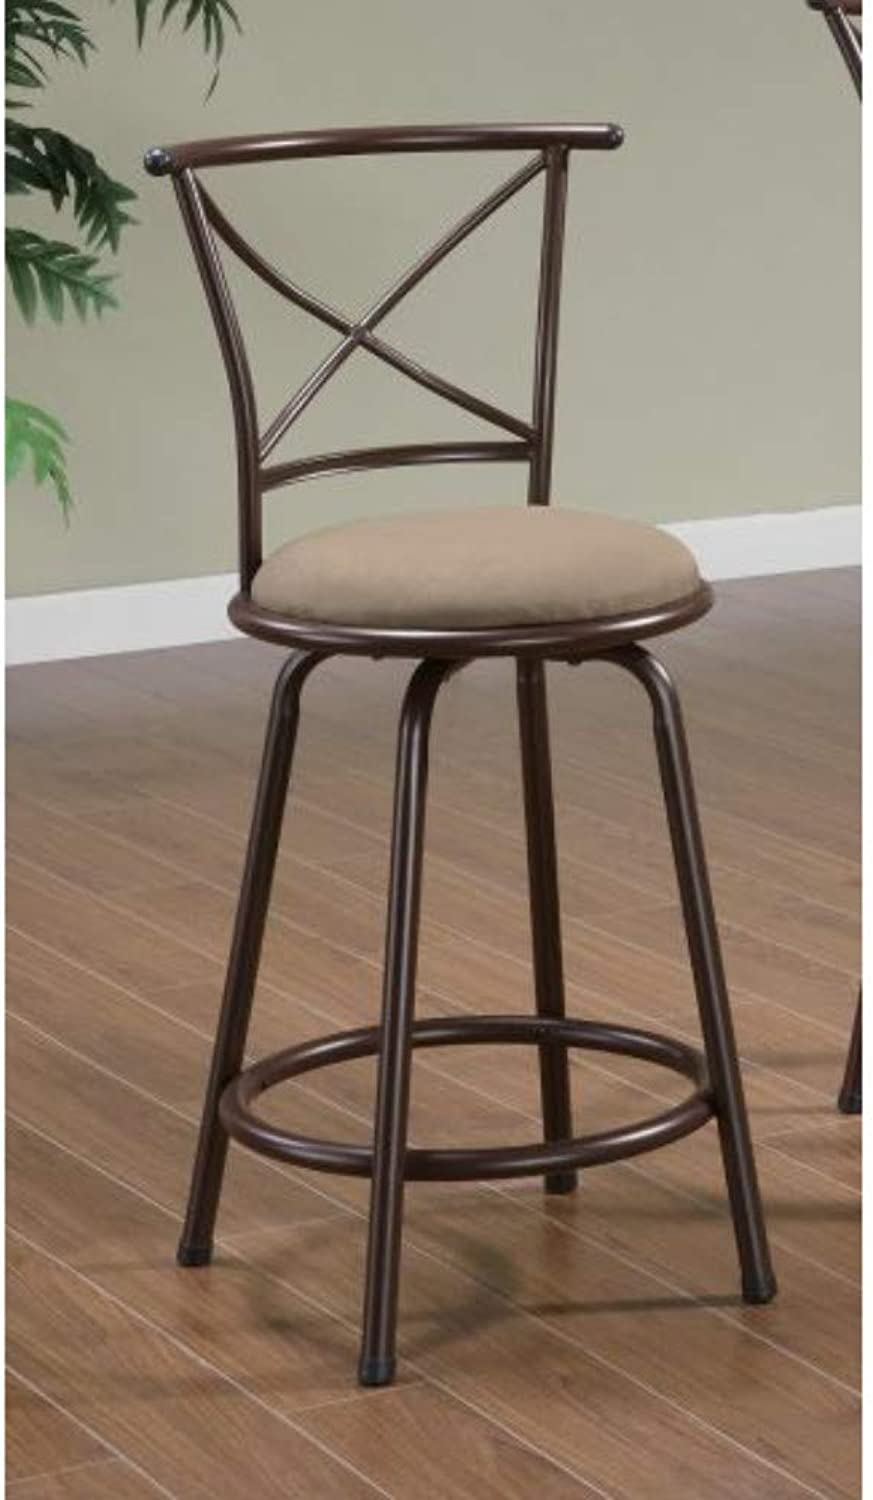 Benzara BM69397 Metal Counter Height Chair, Set of Two, Brown